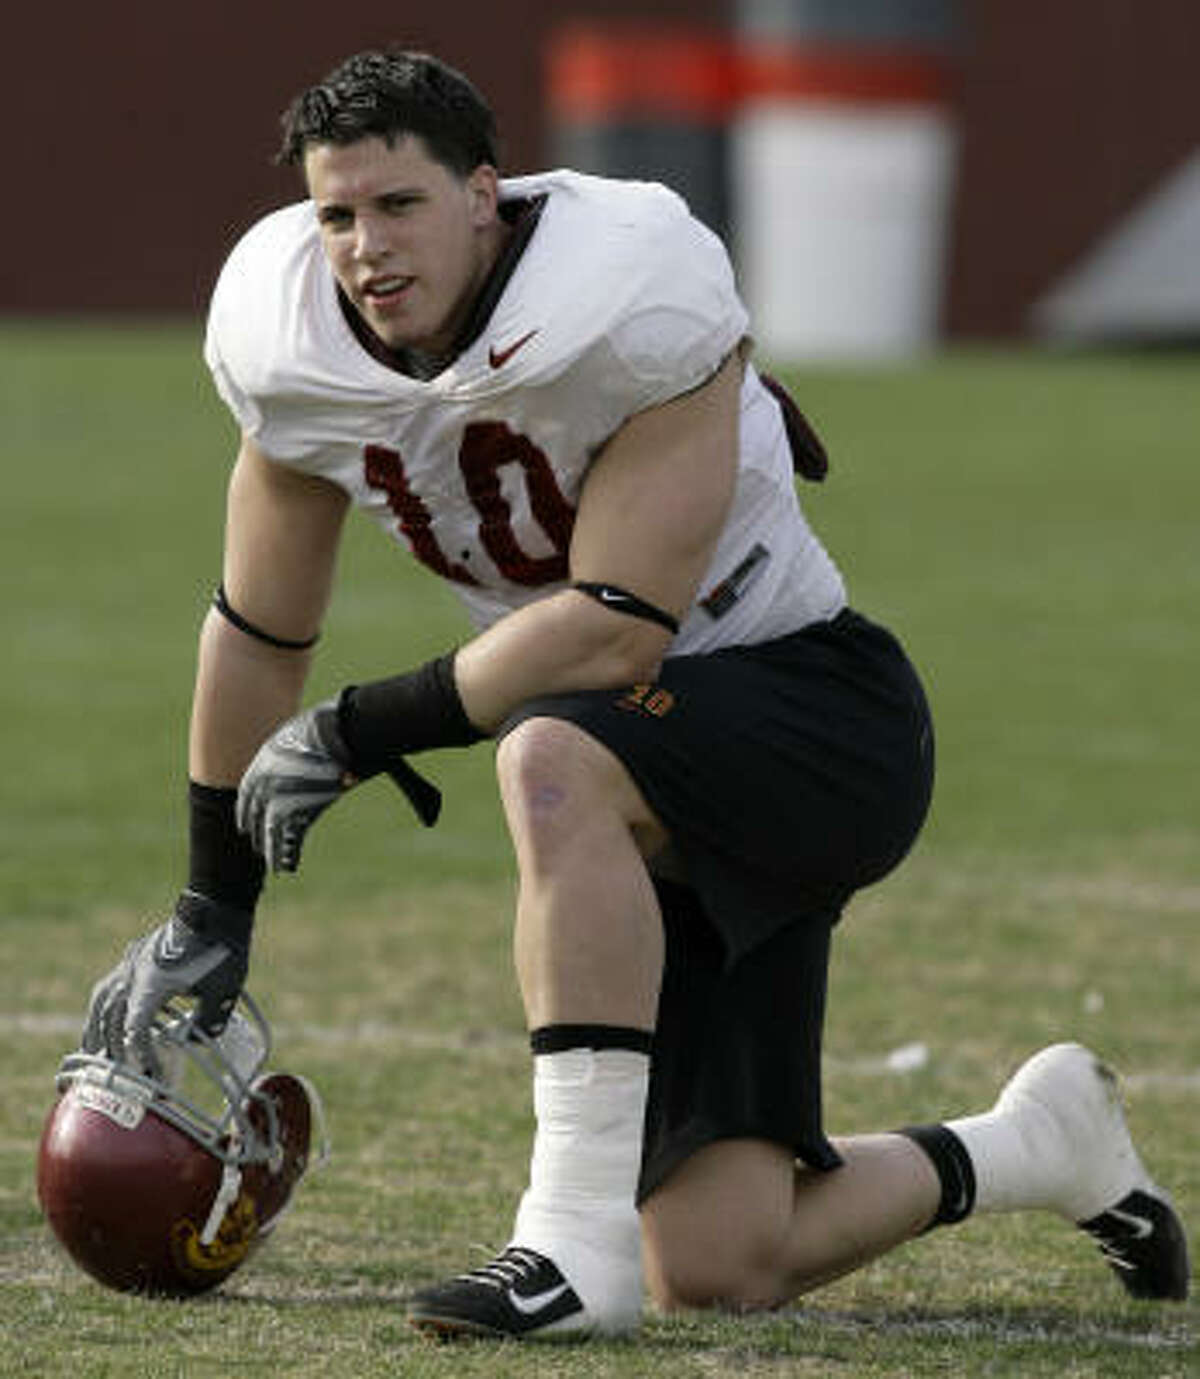 Brian Cushing, 6-3, 246, 4.64, USC He can play any position in any scheme but seems best suited for the strong side in a 4-3.